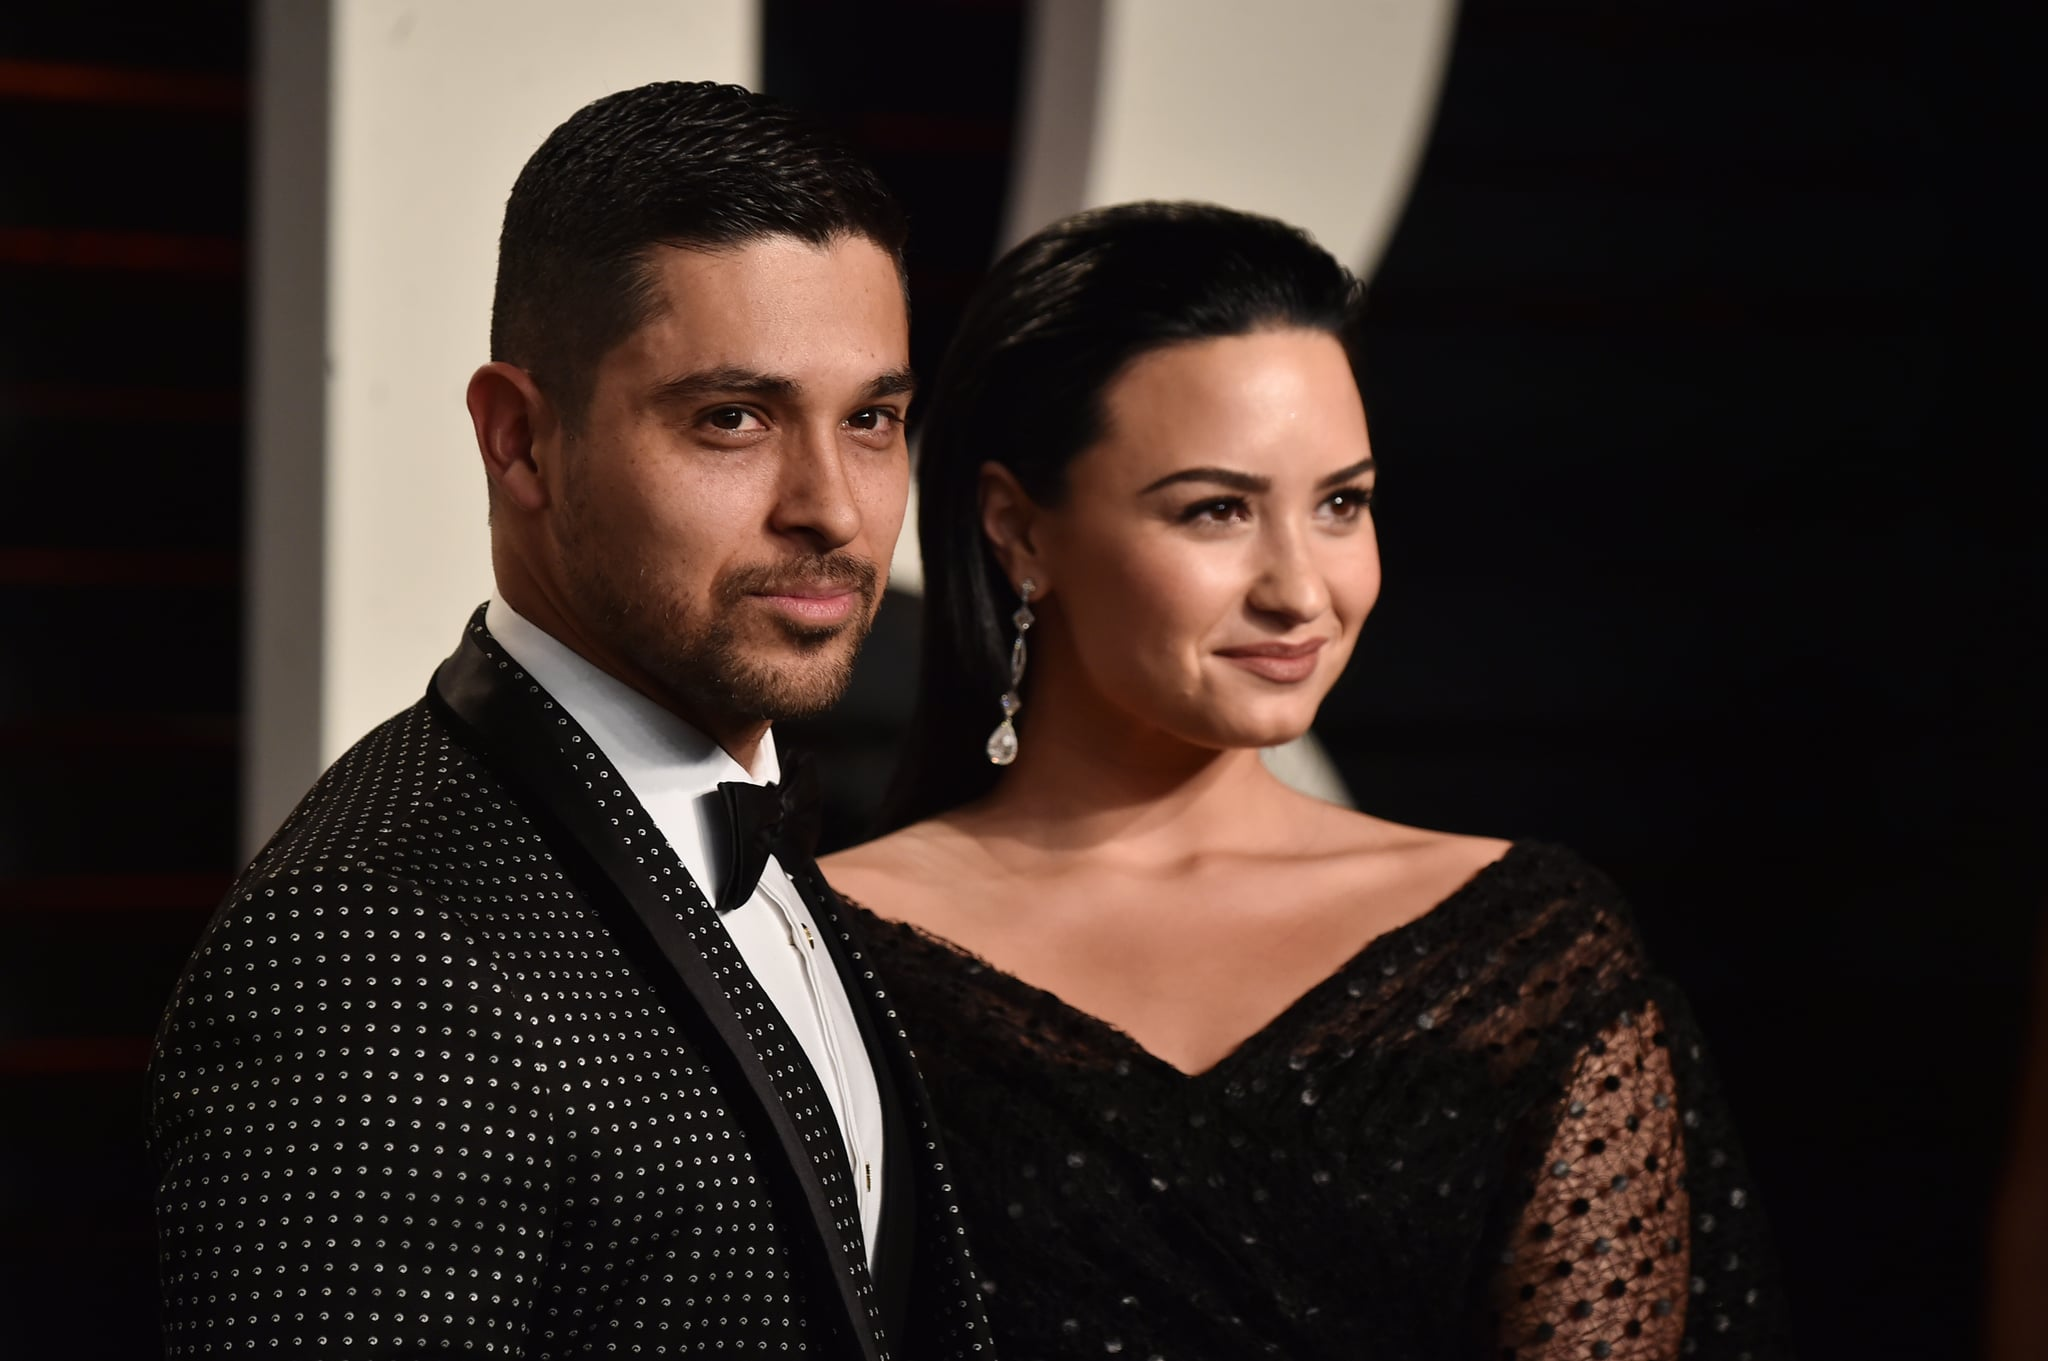 BEVERLY HILLS, CA - FEBRUARY 28:  Actor Wilmer Valderrama (L) and singer Demi Lovato attend the 2016 Vanity Fair Oscar Party hosted By Graydon Carter at Wallis Annenberg Centre for the Performing Arts on February 28, 2016 in Beverly Hills, California.  (Photo by Alberto E. Rodriguez/WireImage)